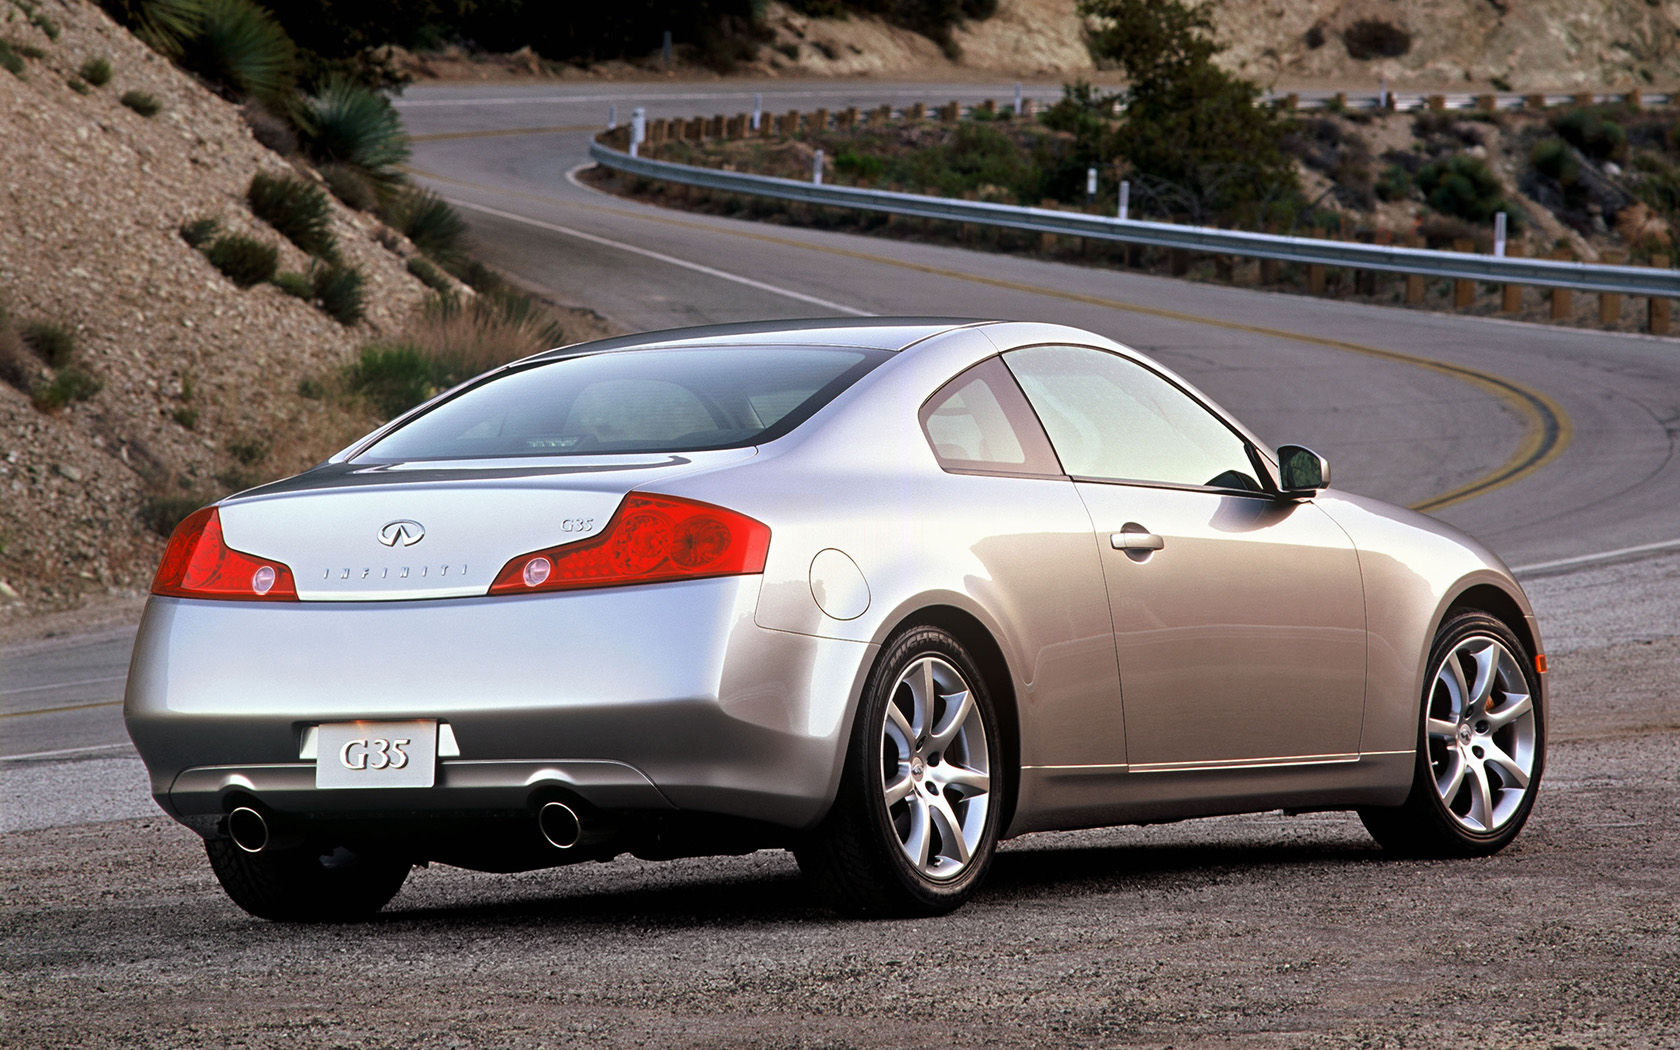 infiniti g35 wallpaper iphone